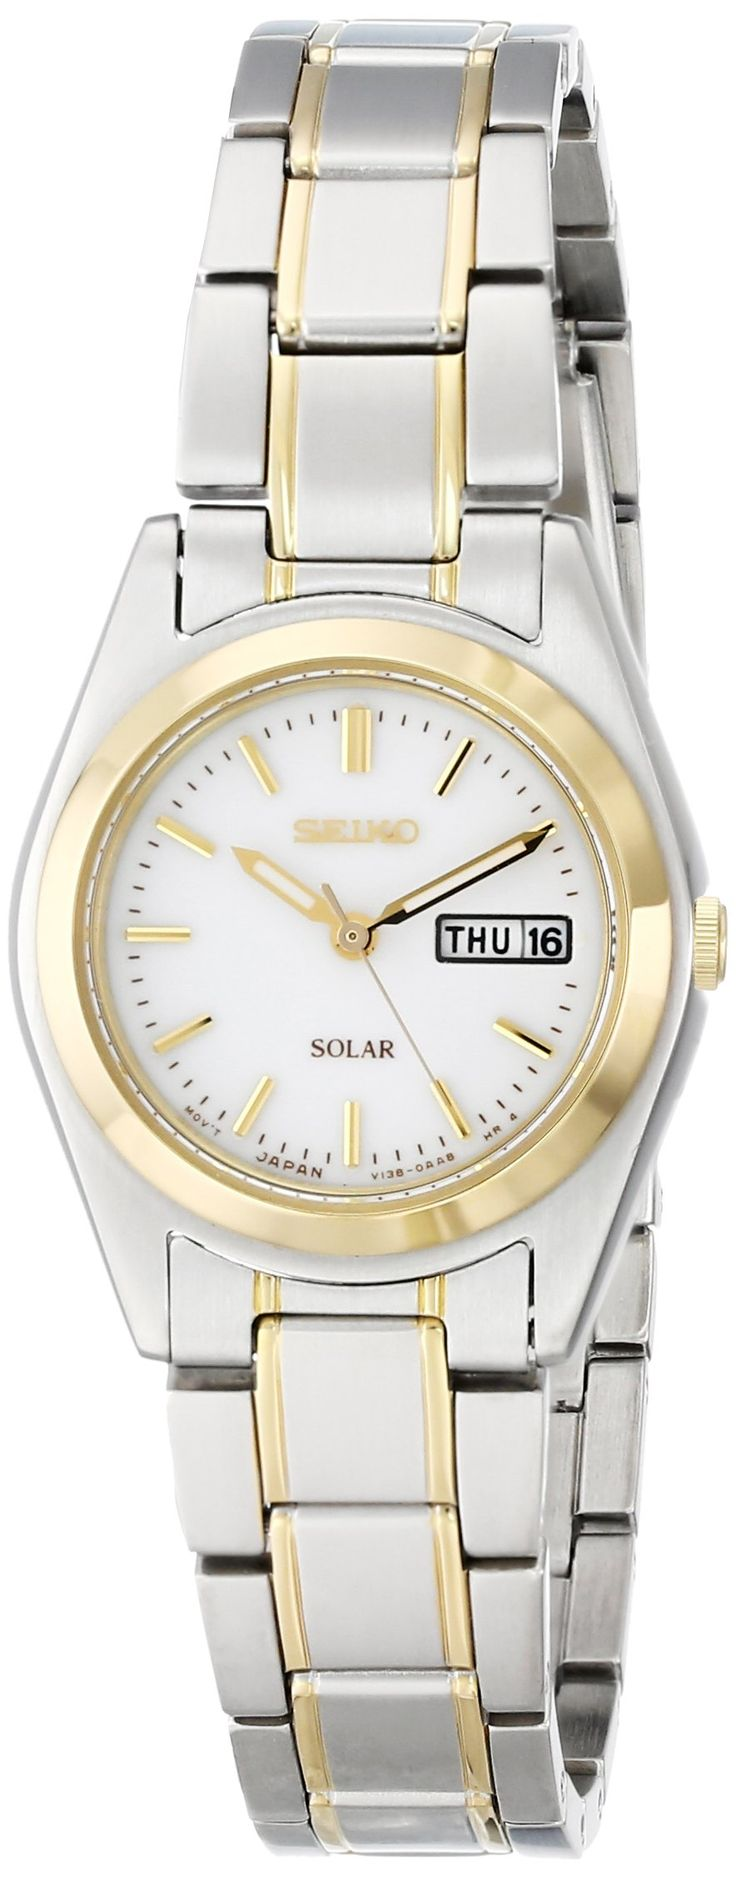 seiko s sut108 two tone stainless steel solar